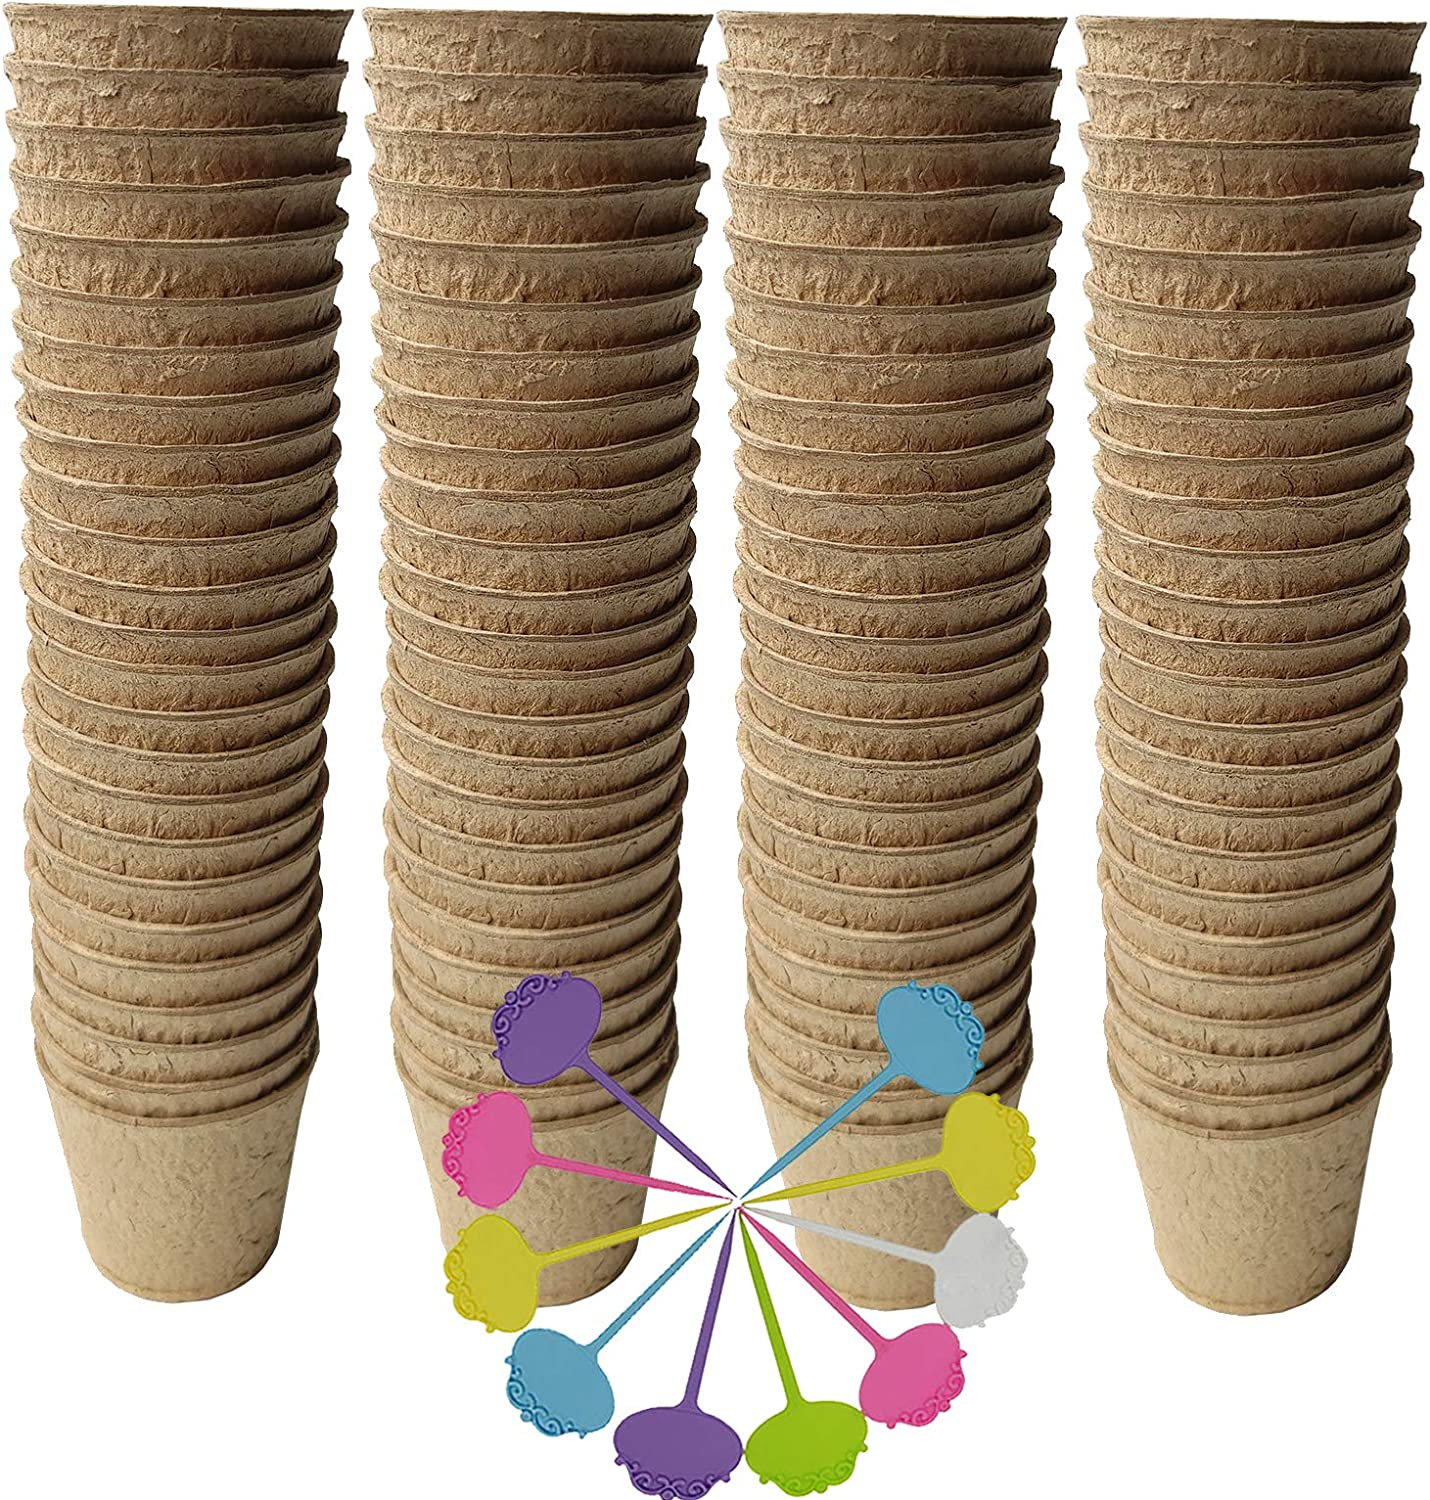 Biodegradable Peat Pots for seedlings, 100 Pack Plant Seed Starter Pots Kit, 2.36inch Succulent Planter Nursery Pots with Free Plant Markers, Garden Germination Kits